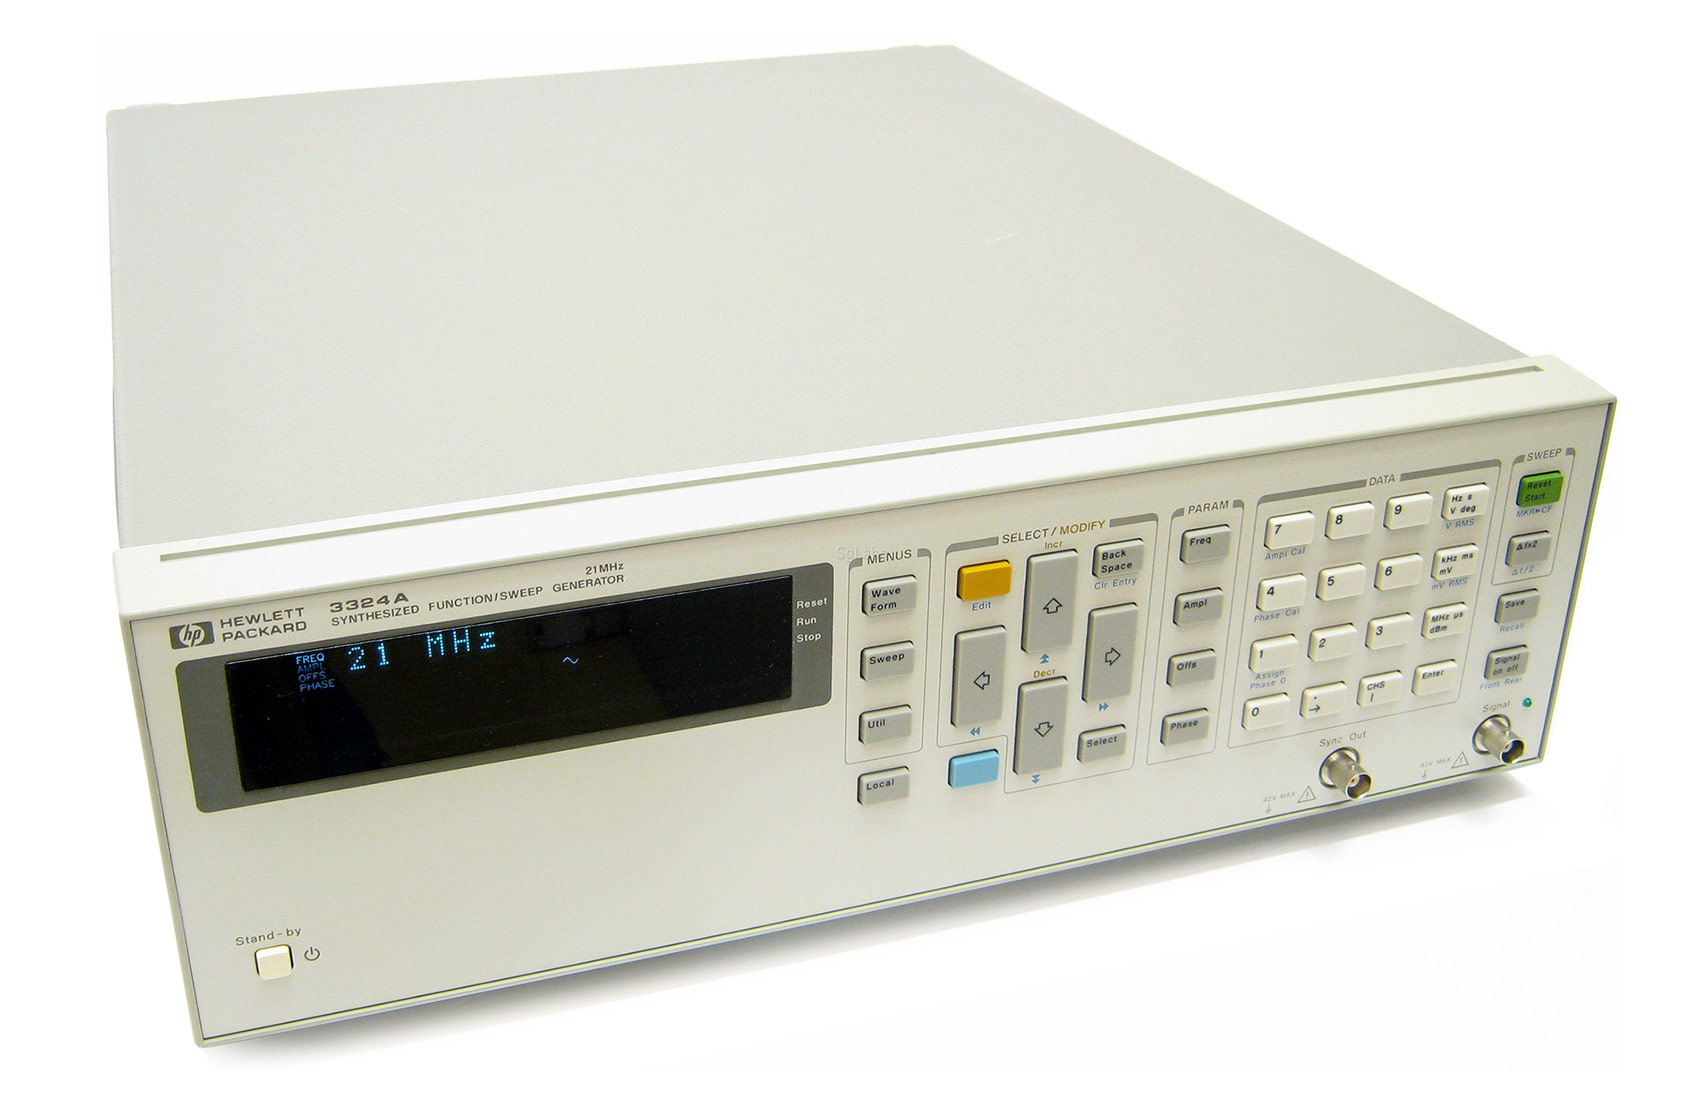 HP/Agilent 3324A Synthesized Function/Sweep Generator